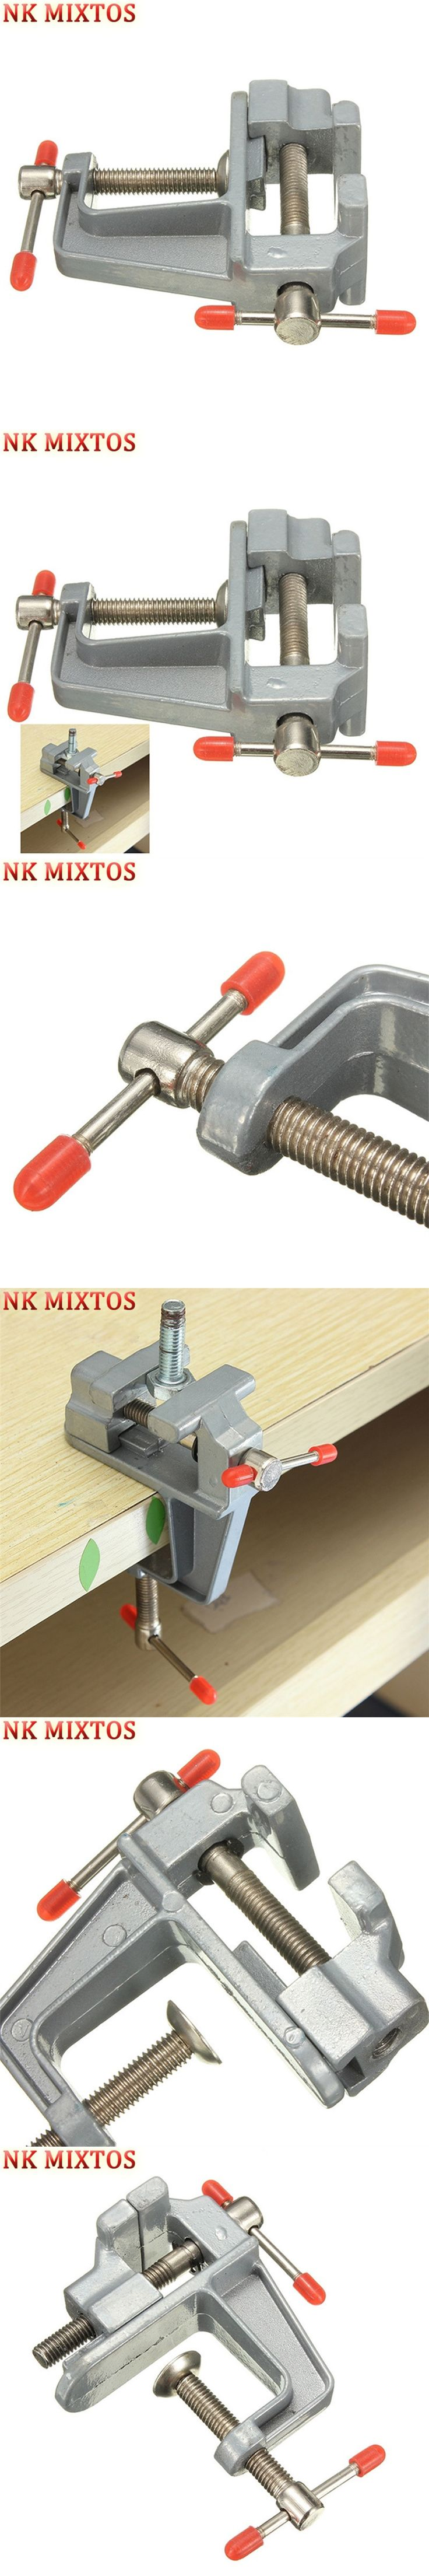 Hot Durable Aluminum Mini Jewelers Hobby Clamp On Portable Table Bench Vise Vice Tool for DIY Jewellery Craft Mould Fixed Repair